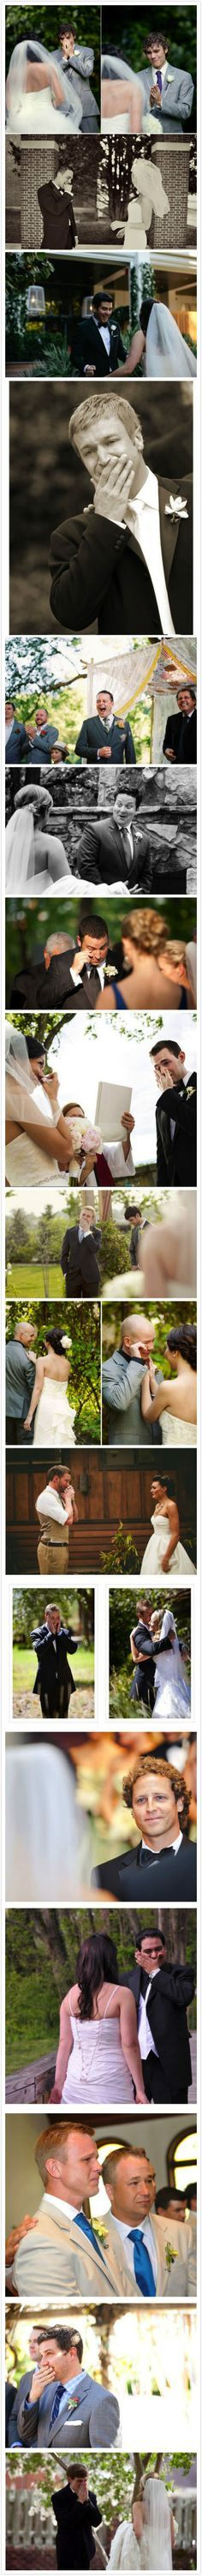 I want this to happen to my groom when i get married